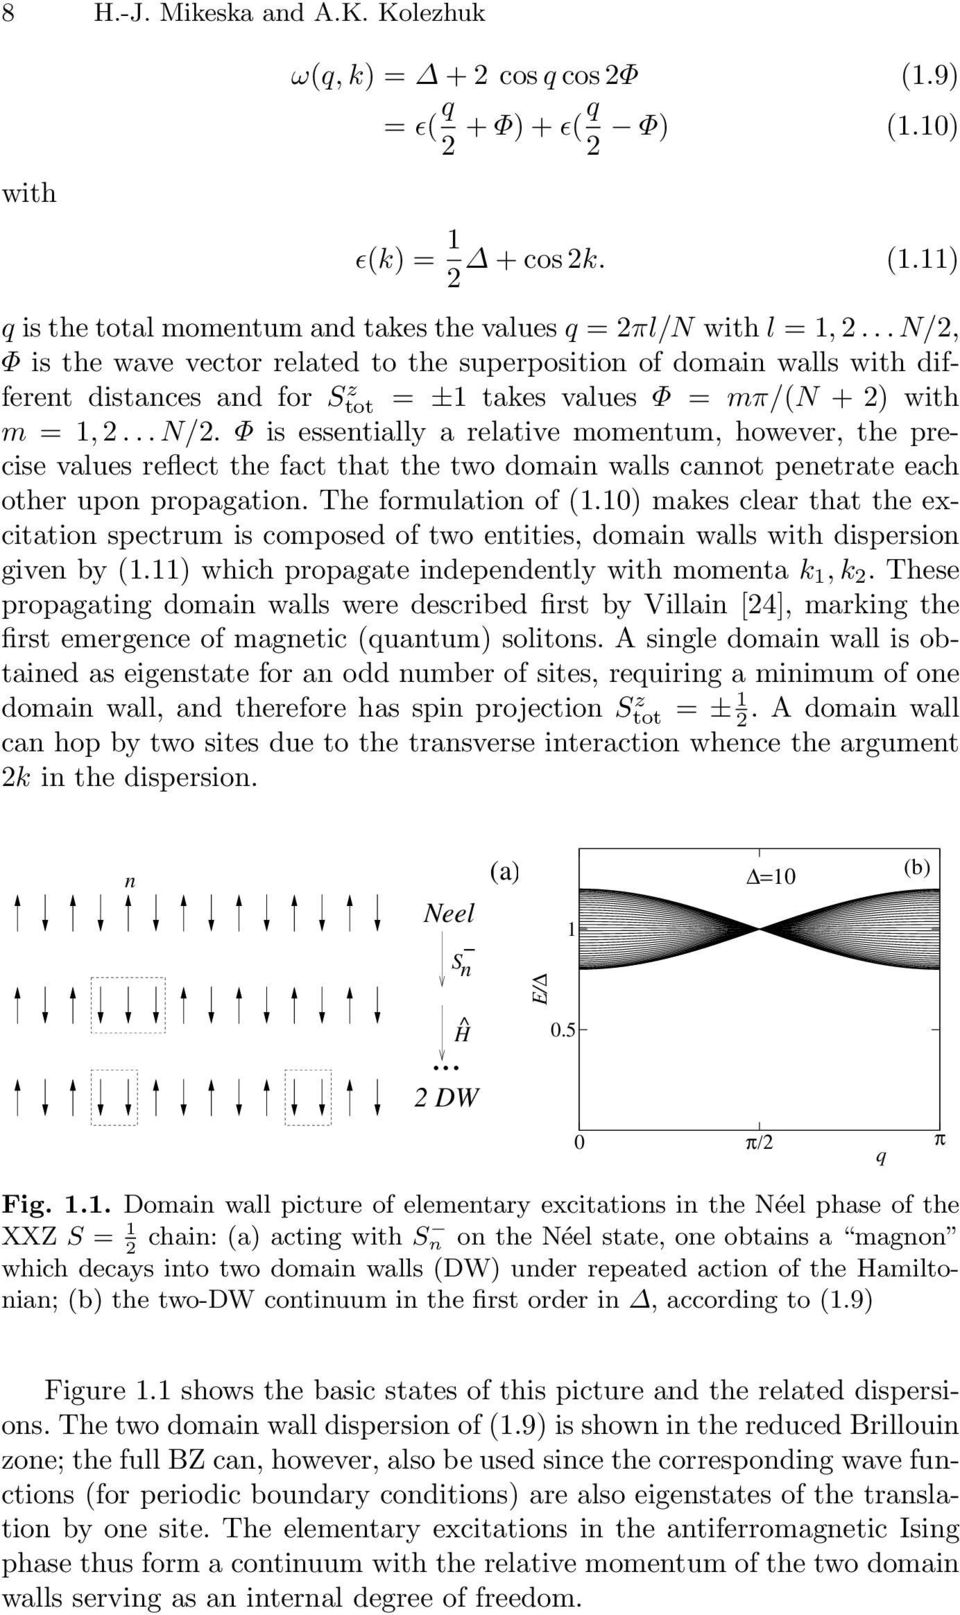 The formulation of (1.10) makes clear that the excitation spectrum is composed of two entities, domain walls with dispersion given by (1.11) which propagate independently with momenta k 1,k 2.